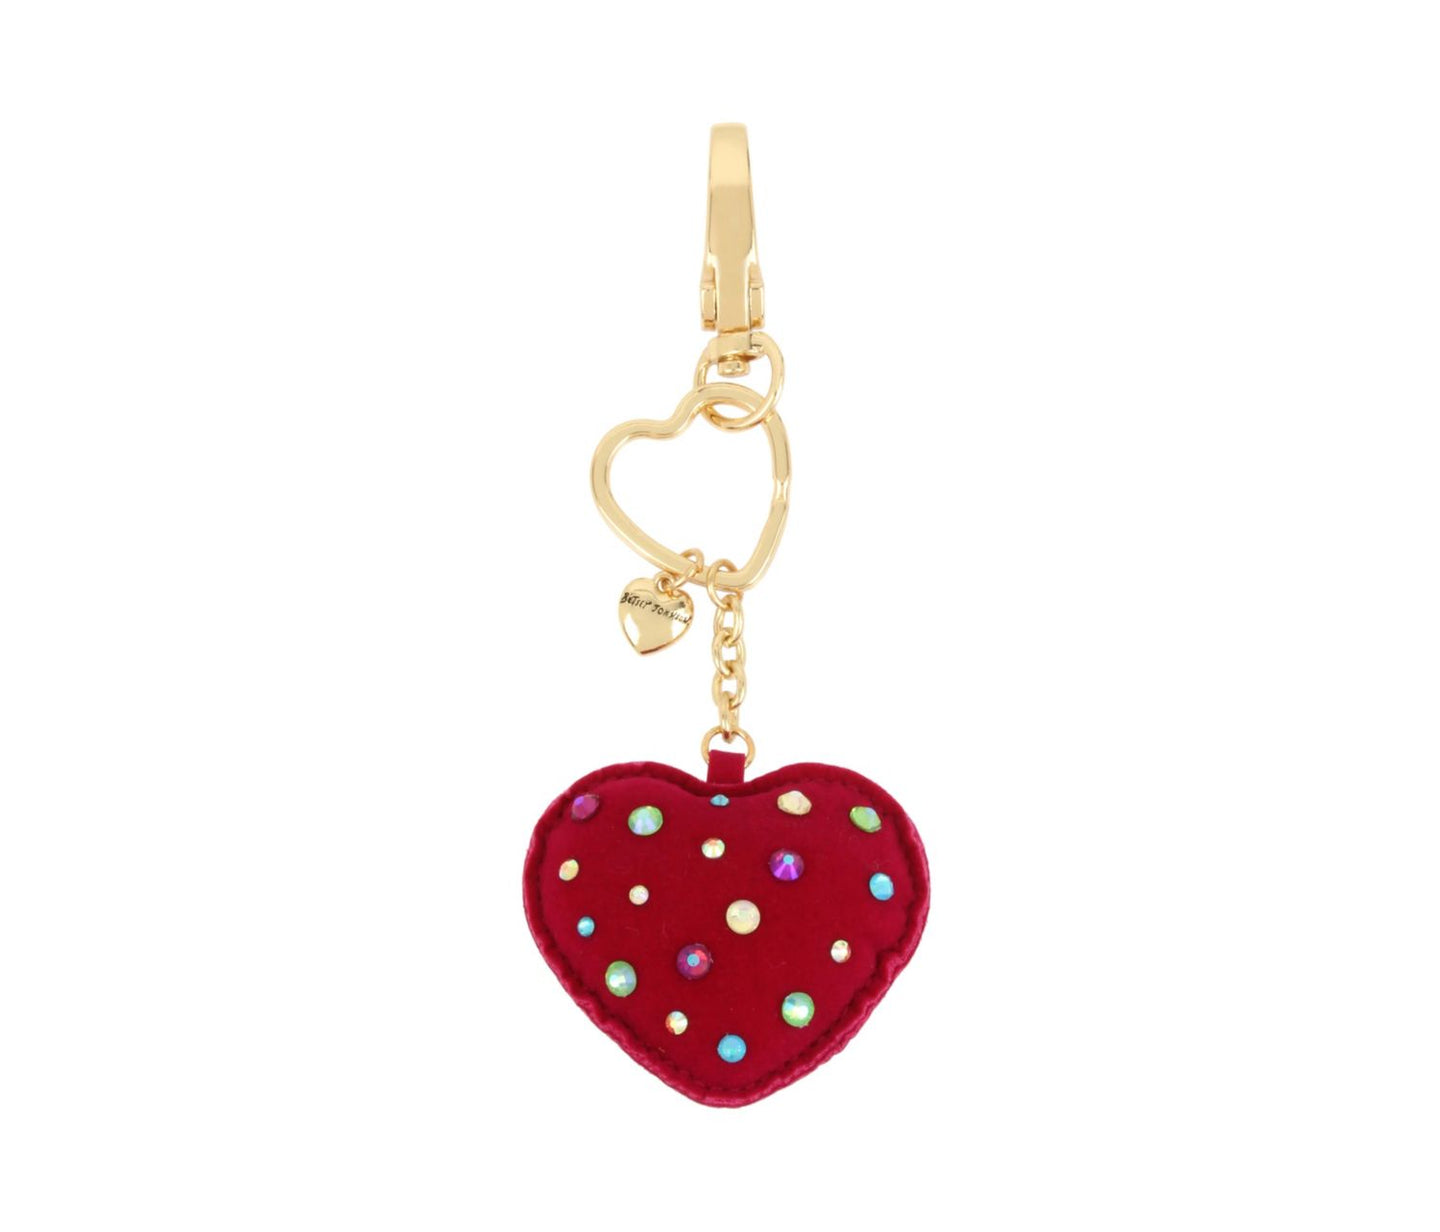 HOLIDAY 2018 PINK HEART KEYCHAIN PINK - ACCESSORIES - Betsey Johnson